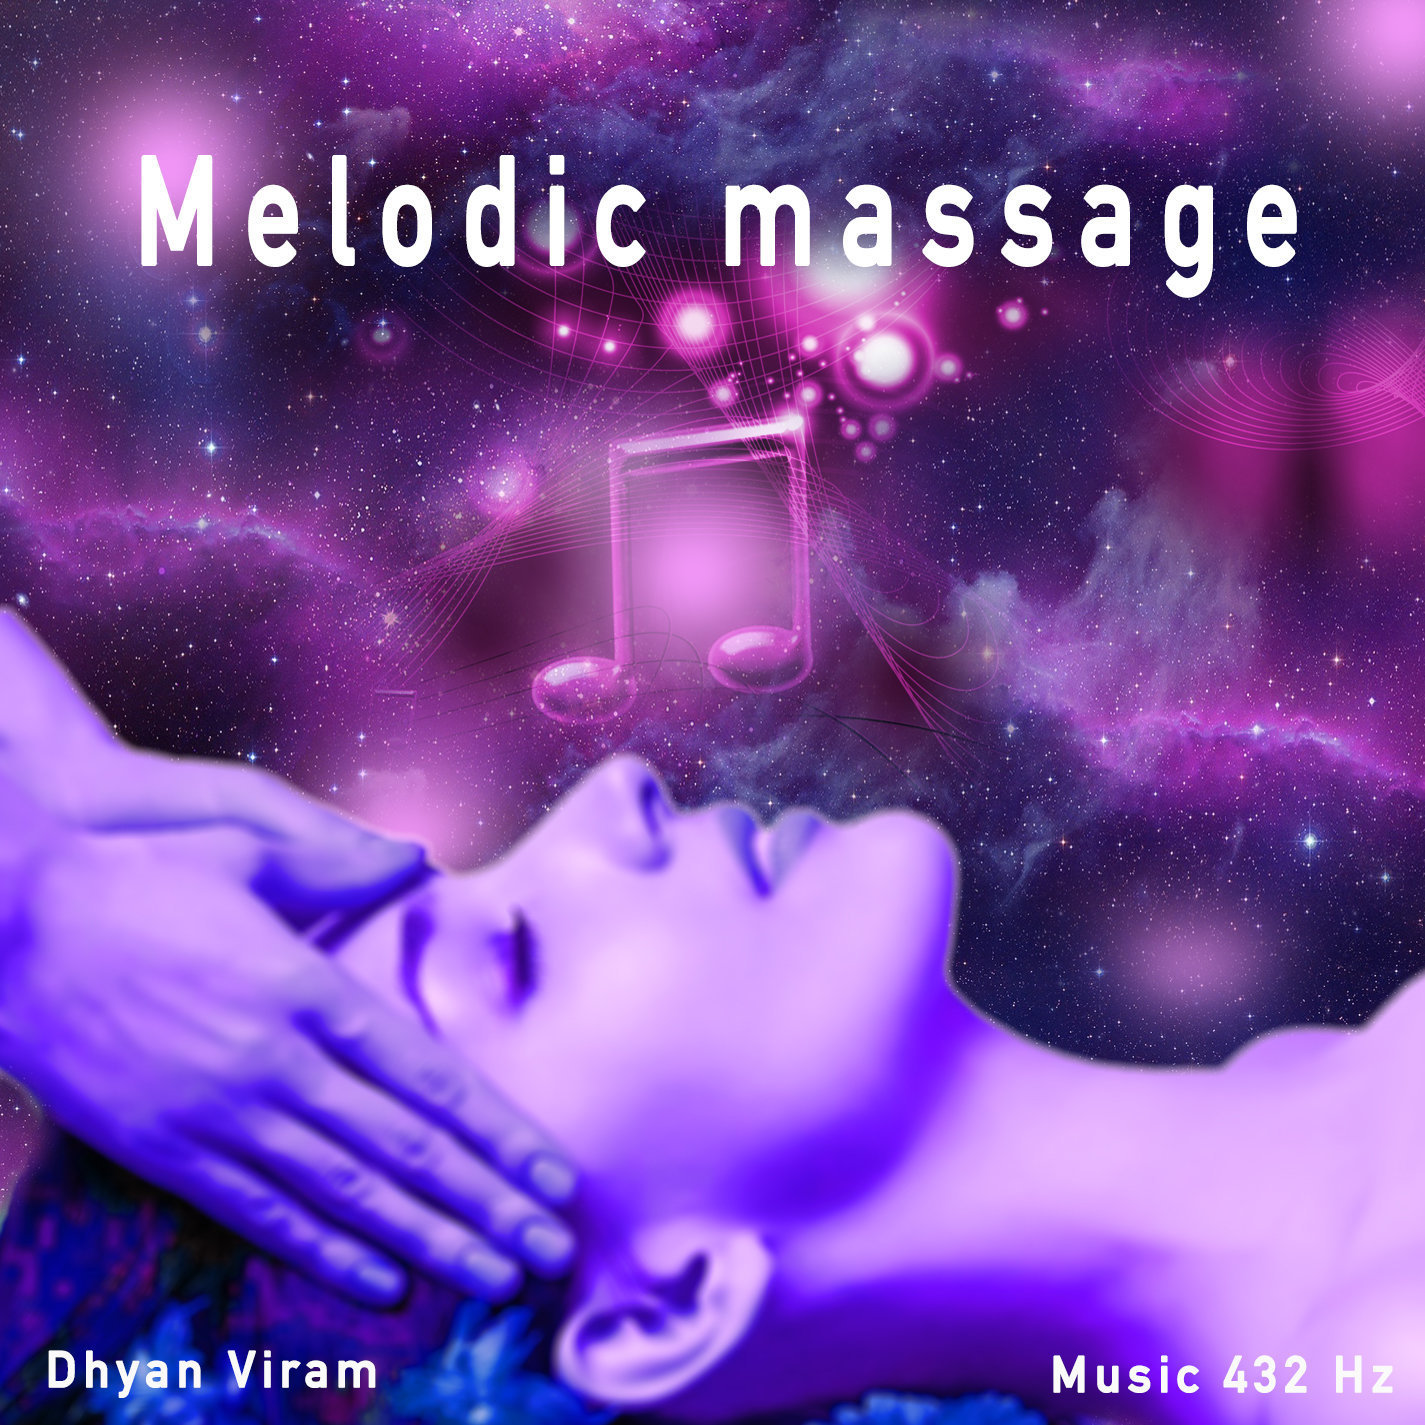 Melodic massage